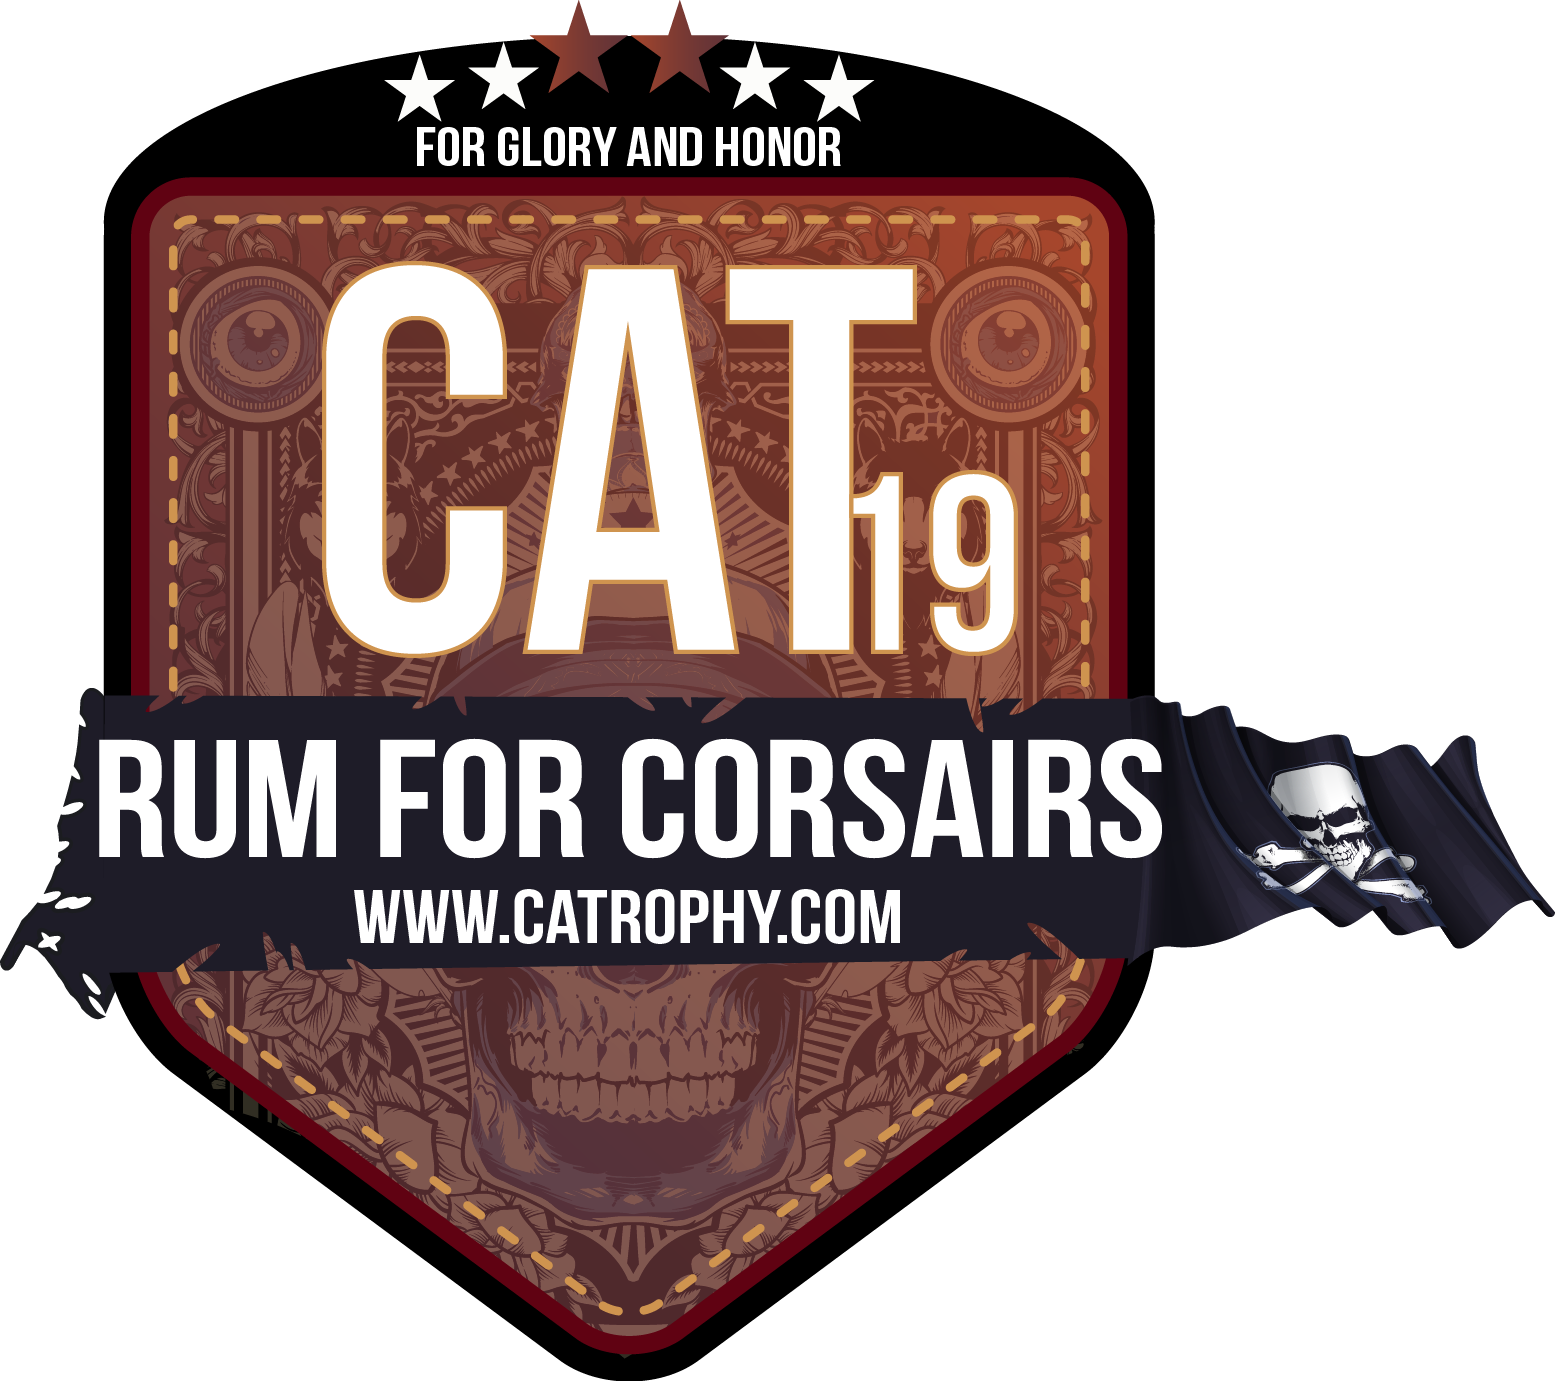 Catrophy 2010 Logo rum for corsairs